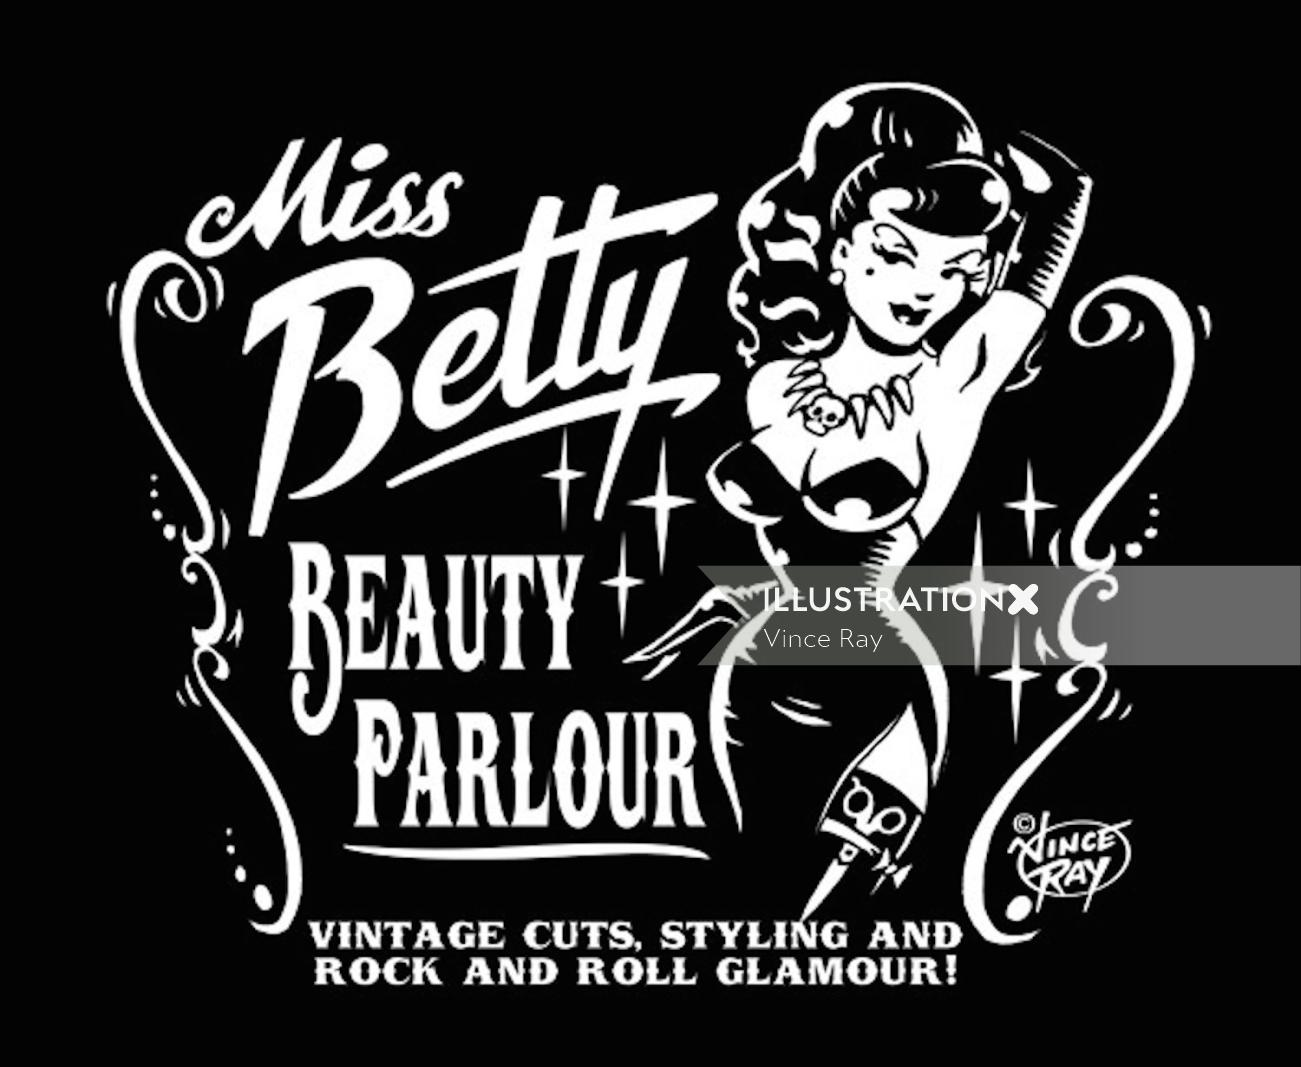 Miss belly beauty parlor advertising illustration